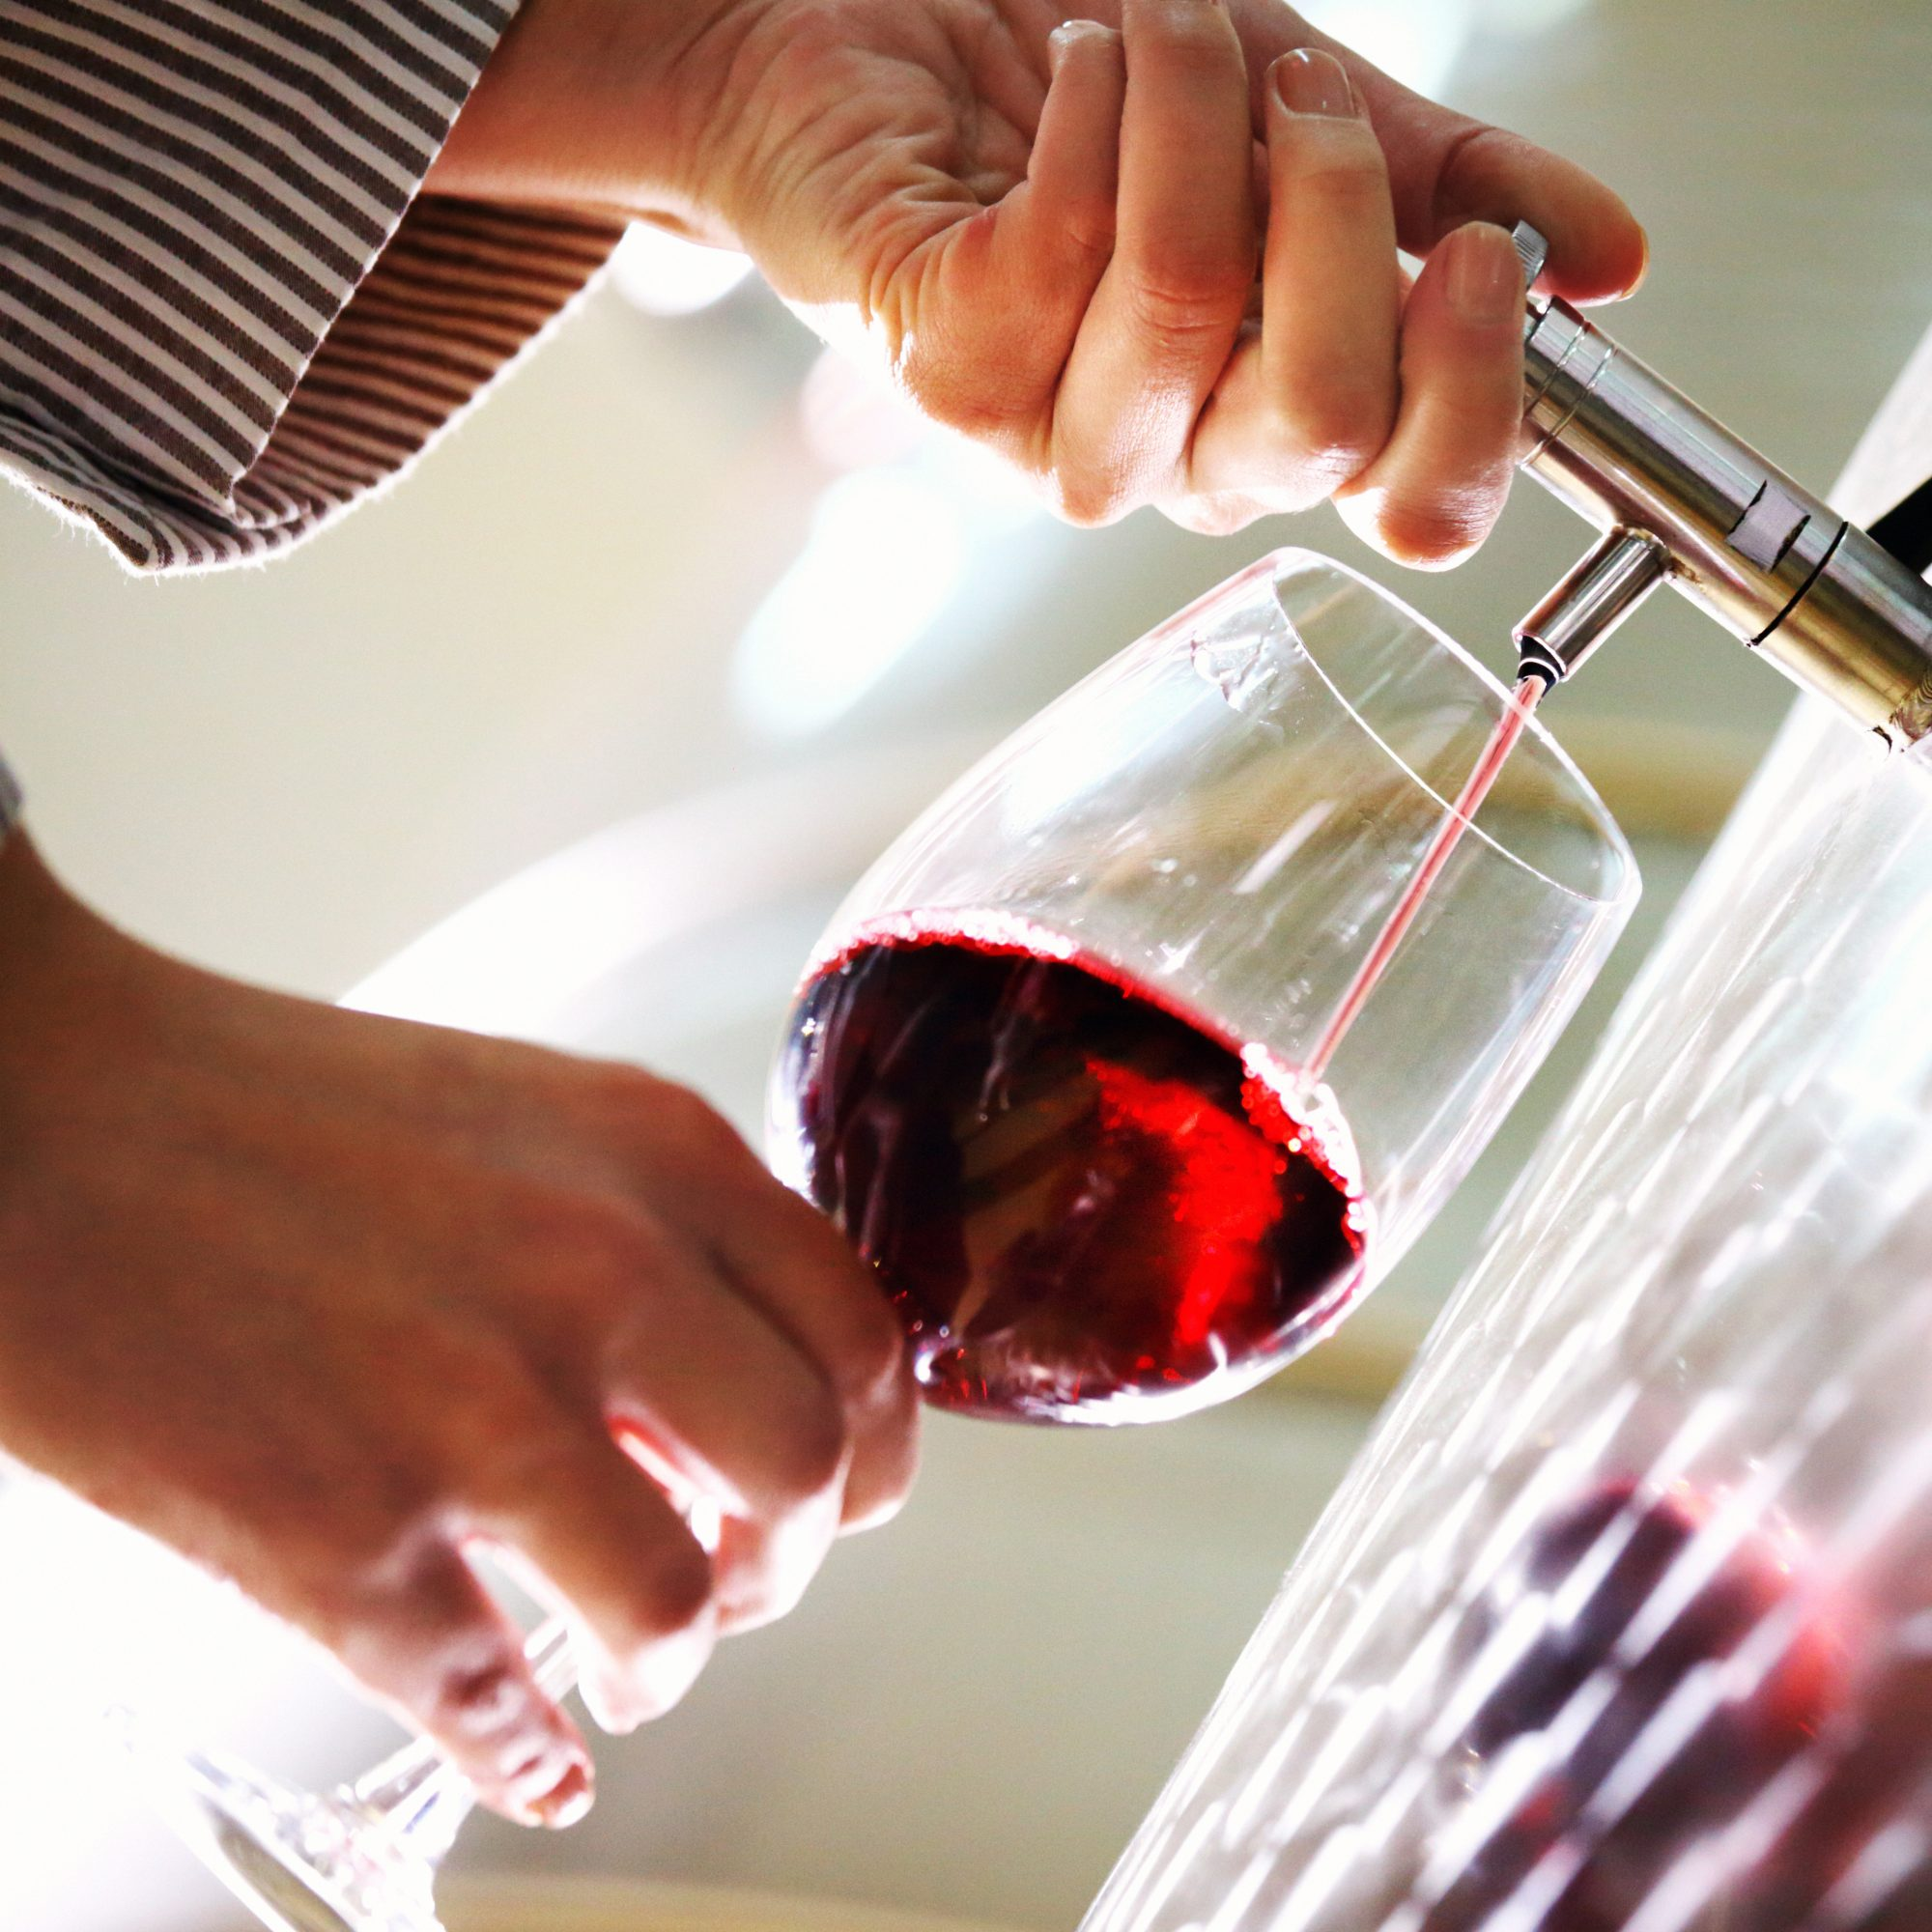 free-wine-fountain-fwx